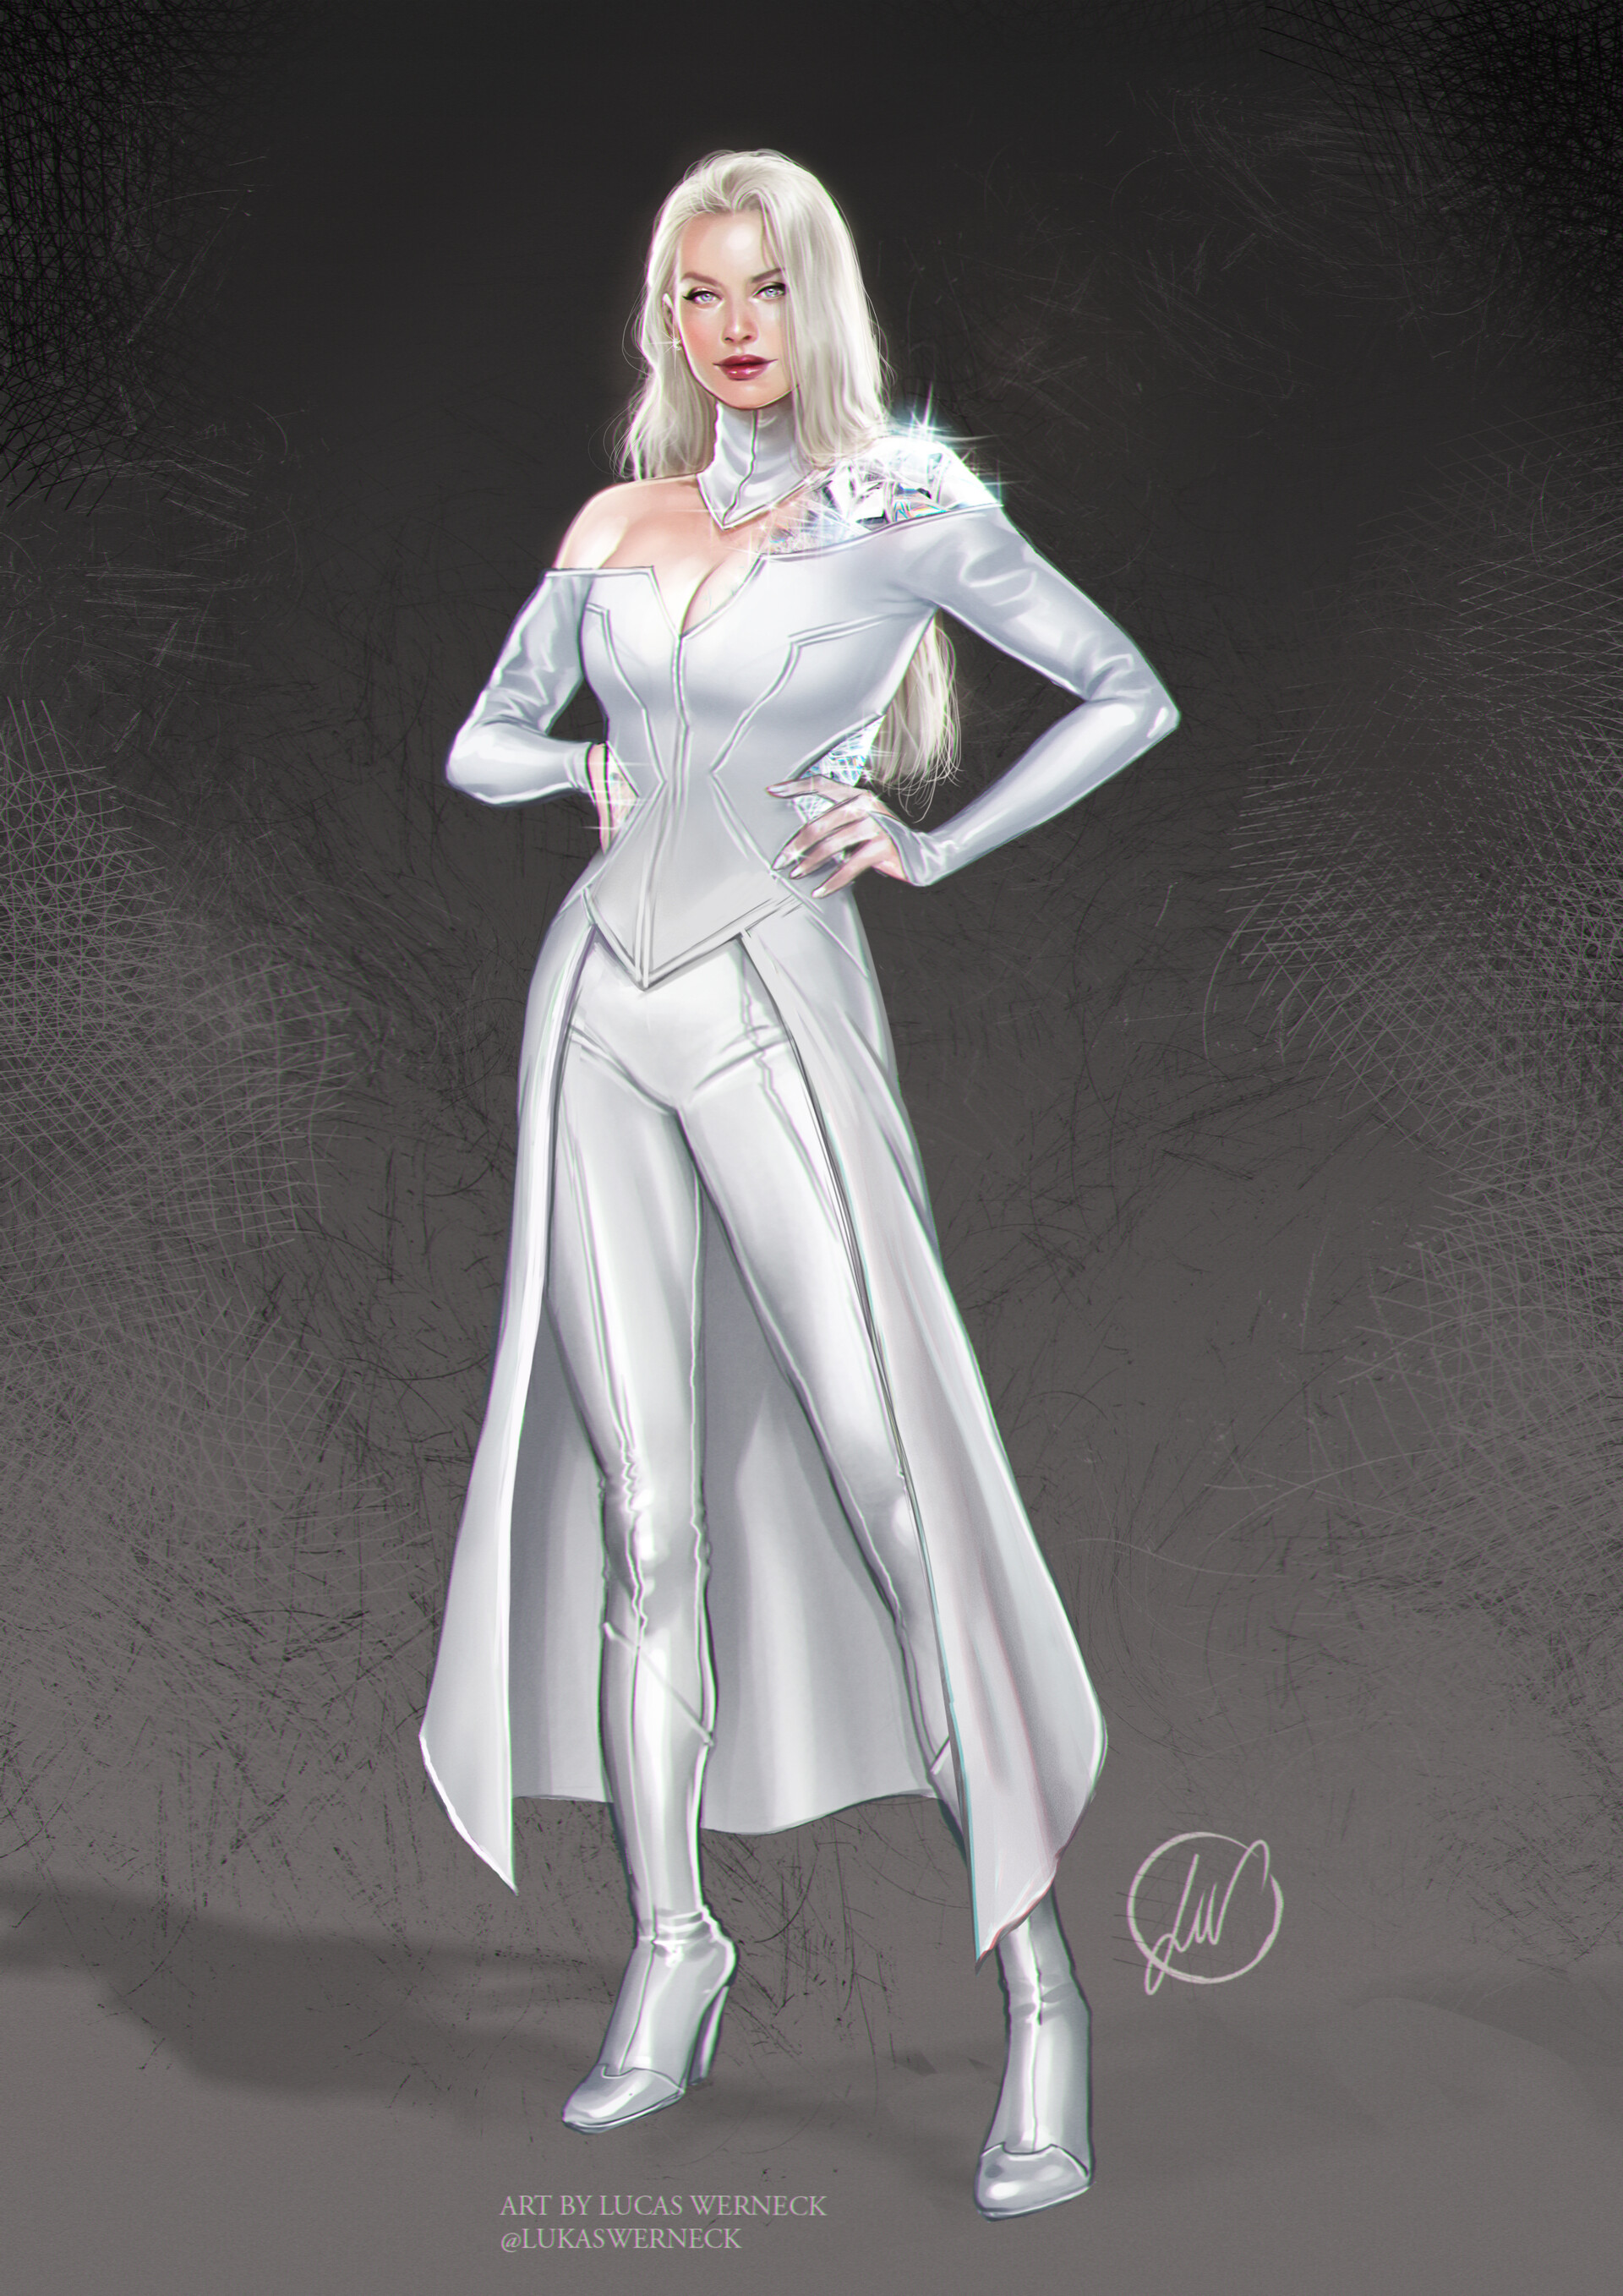 New Emma Frost PF - Page 129 - Statue Forum